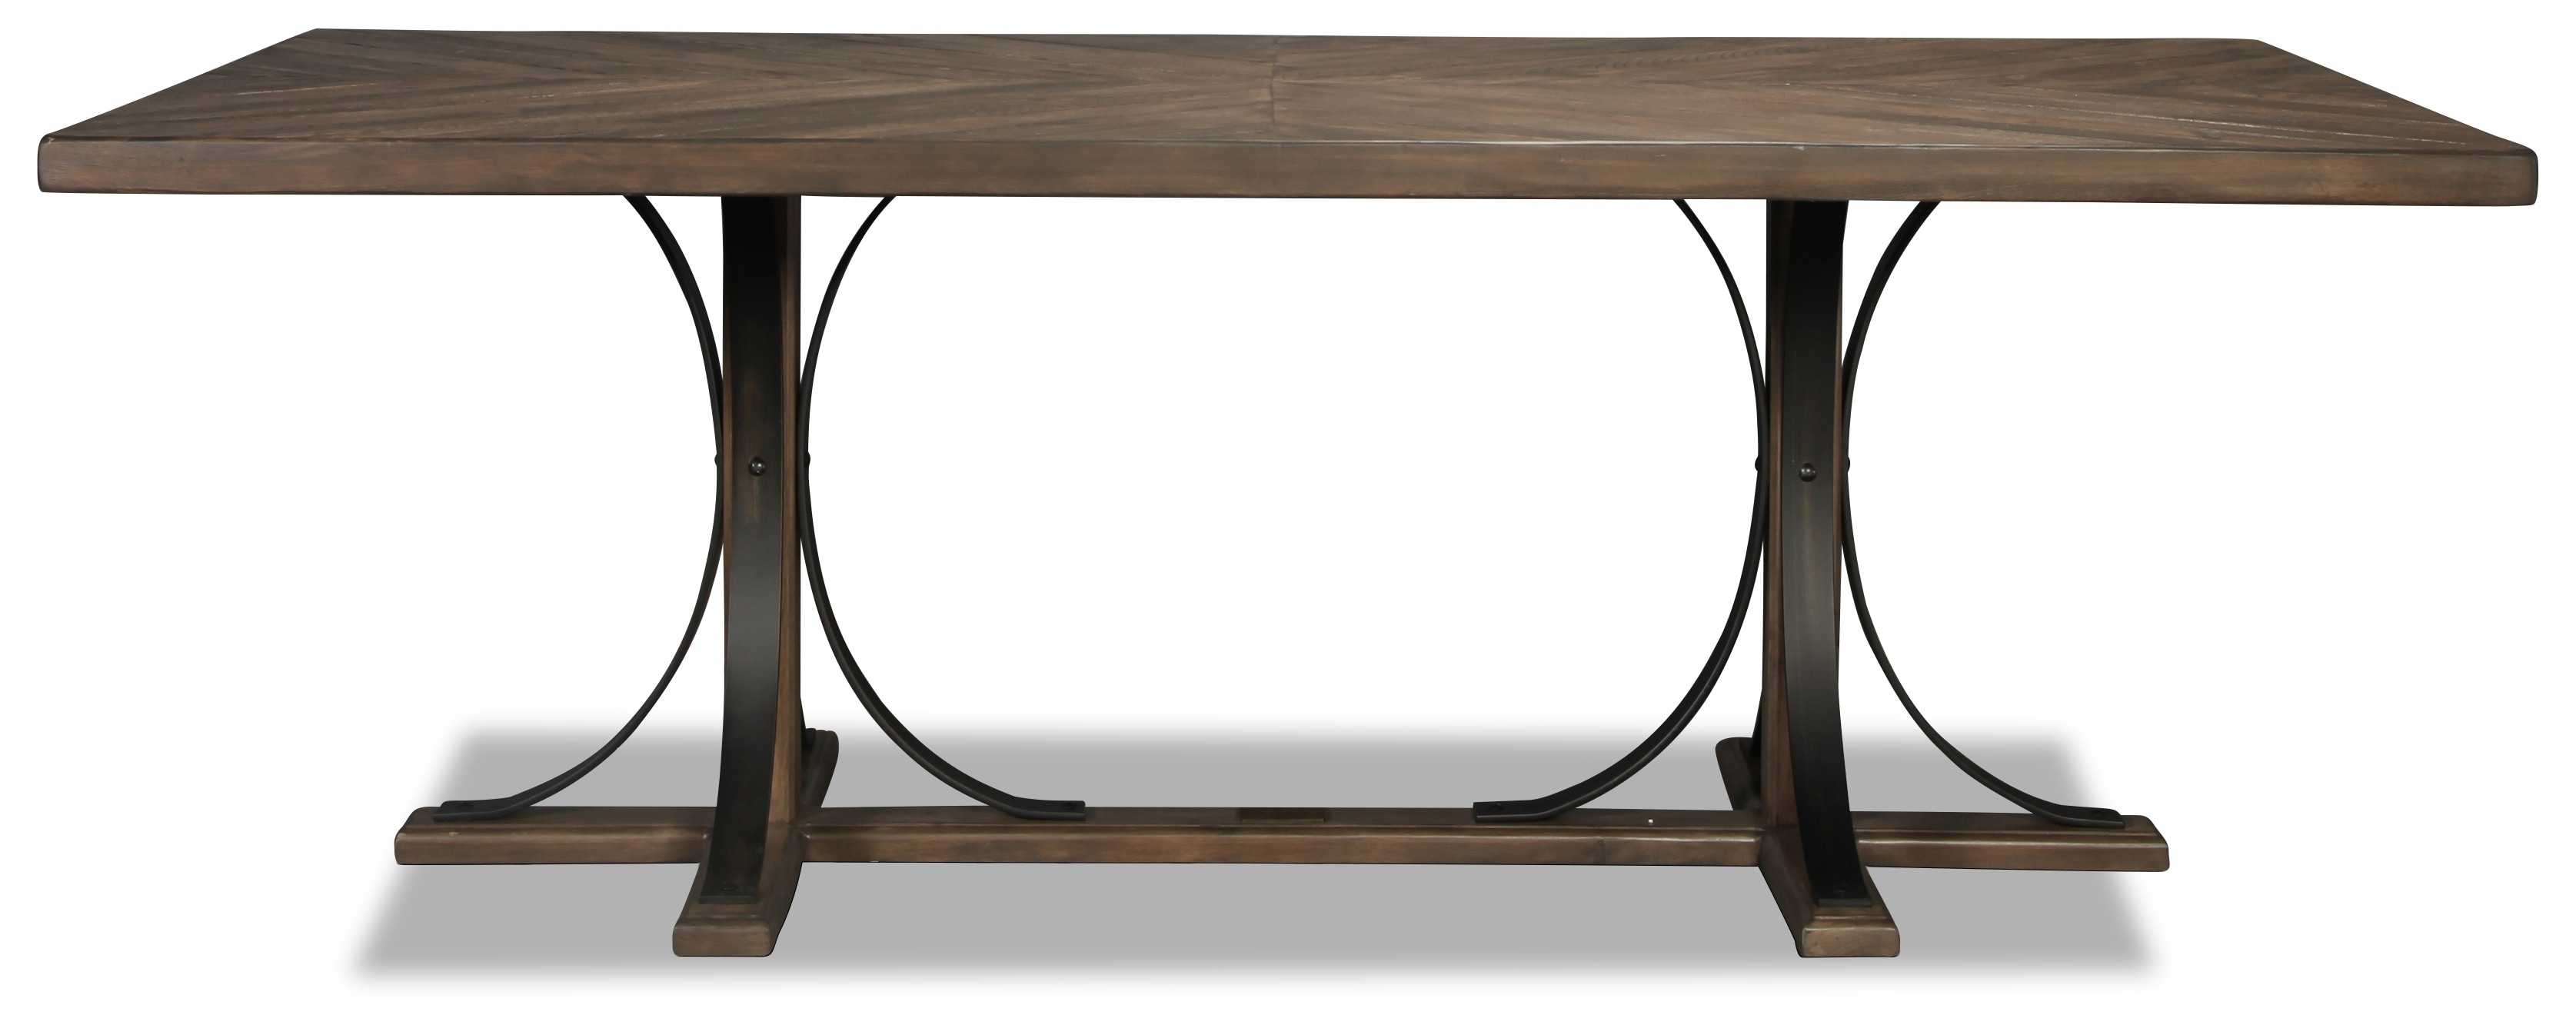 Magnolia Home Traditional Iron Trestle Table | Regarding Newest Magnolia Home Shop Floor Dining Tables With Iron Trestle (Image 17 of 20)